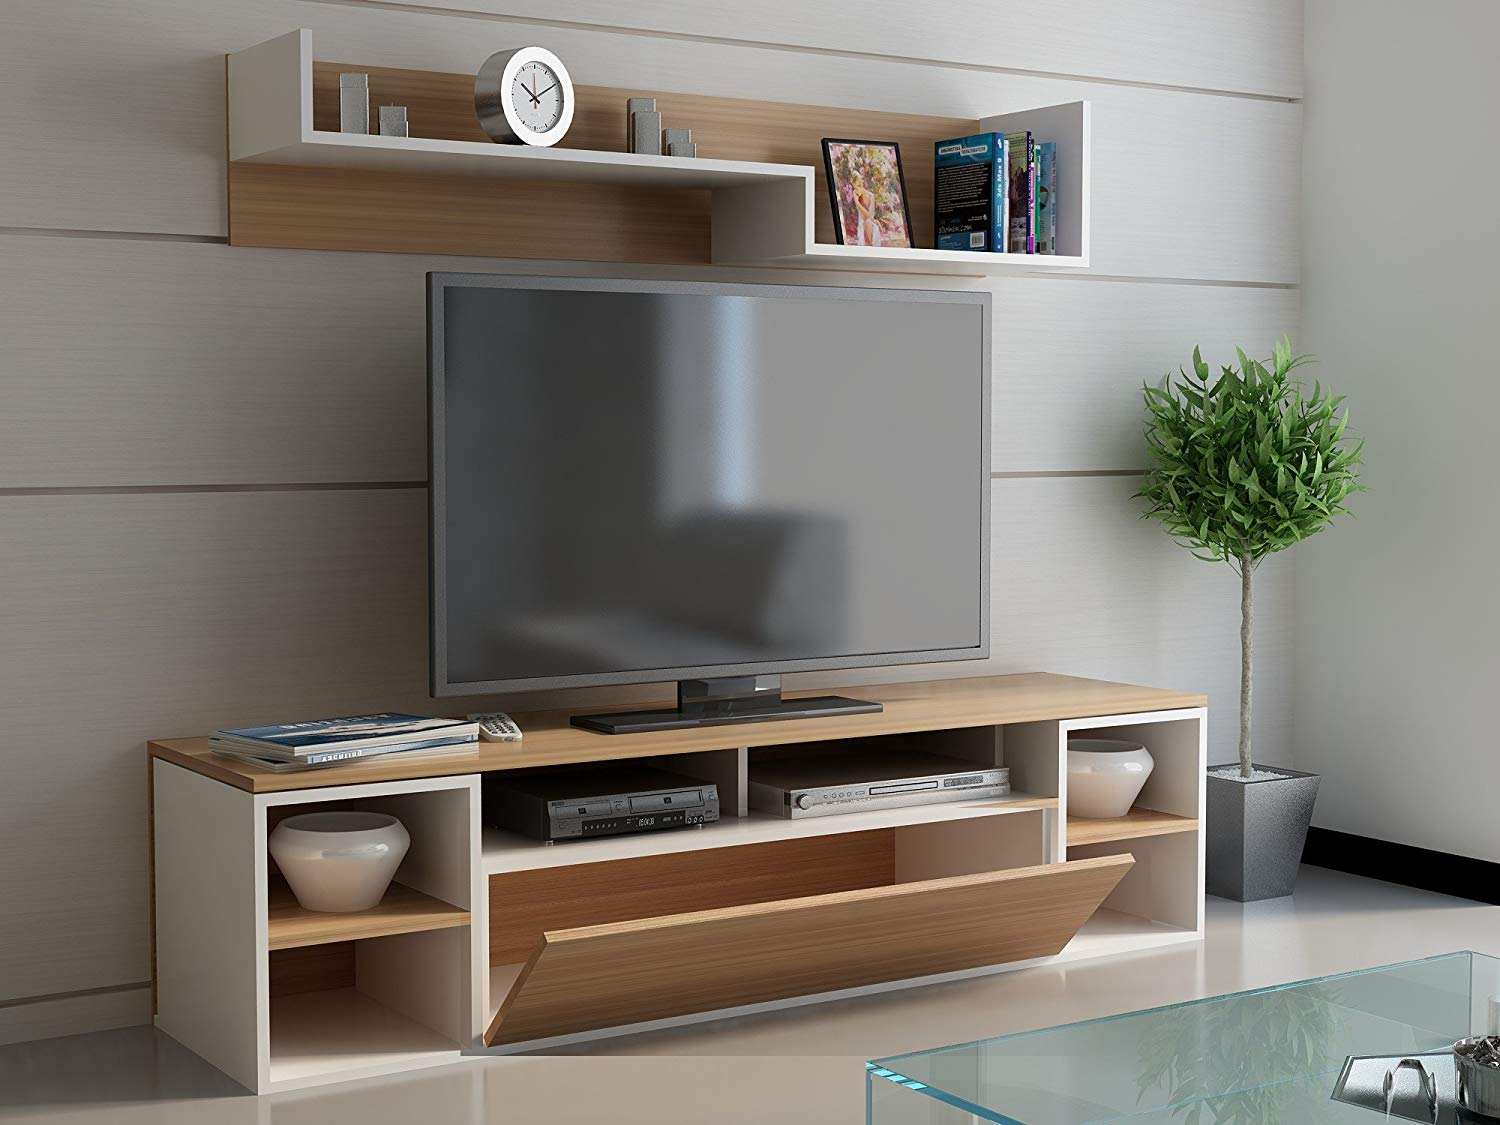 Get Quotations Lamodahome Tv Stand Unit Cream And Wooden Coloured Stylish Simple Parted Storage Multi